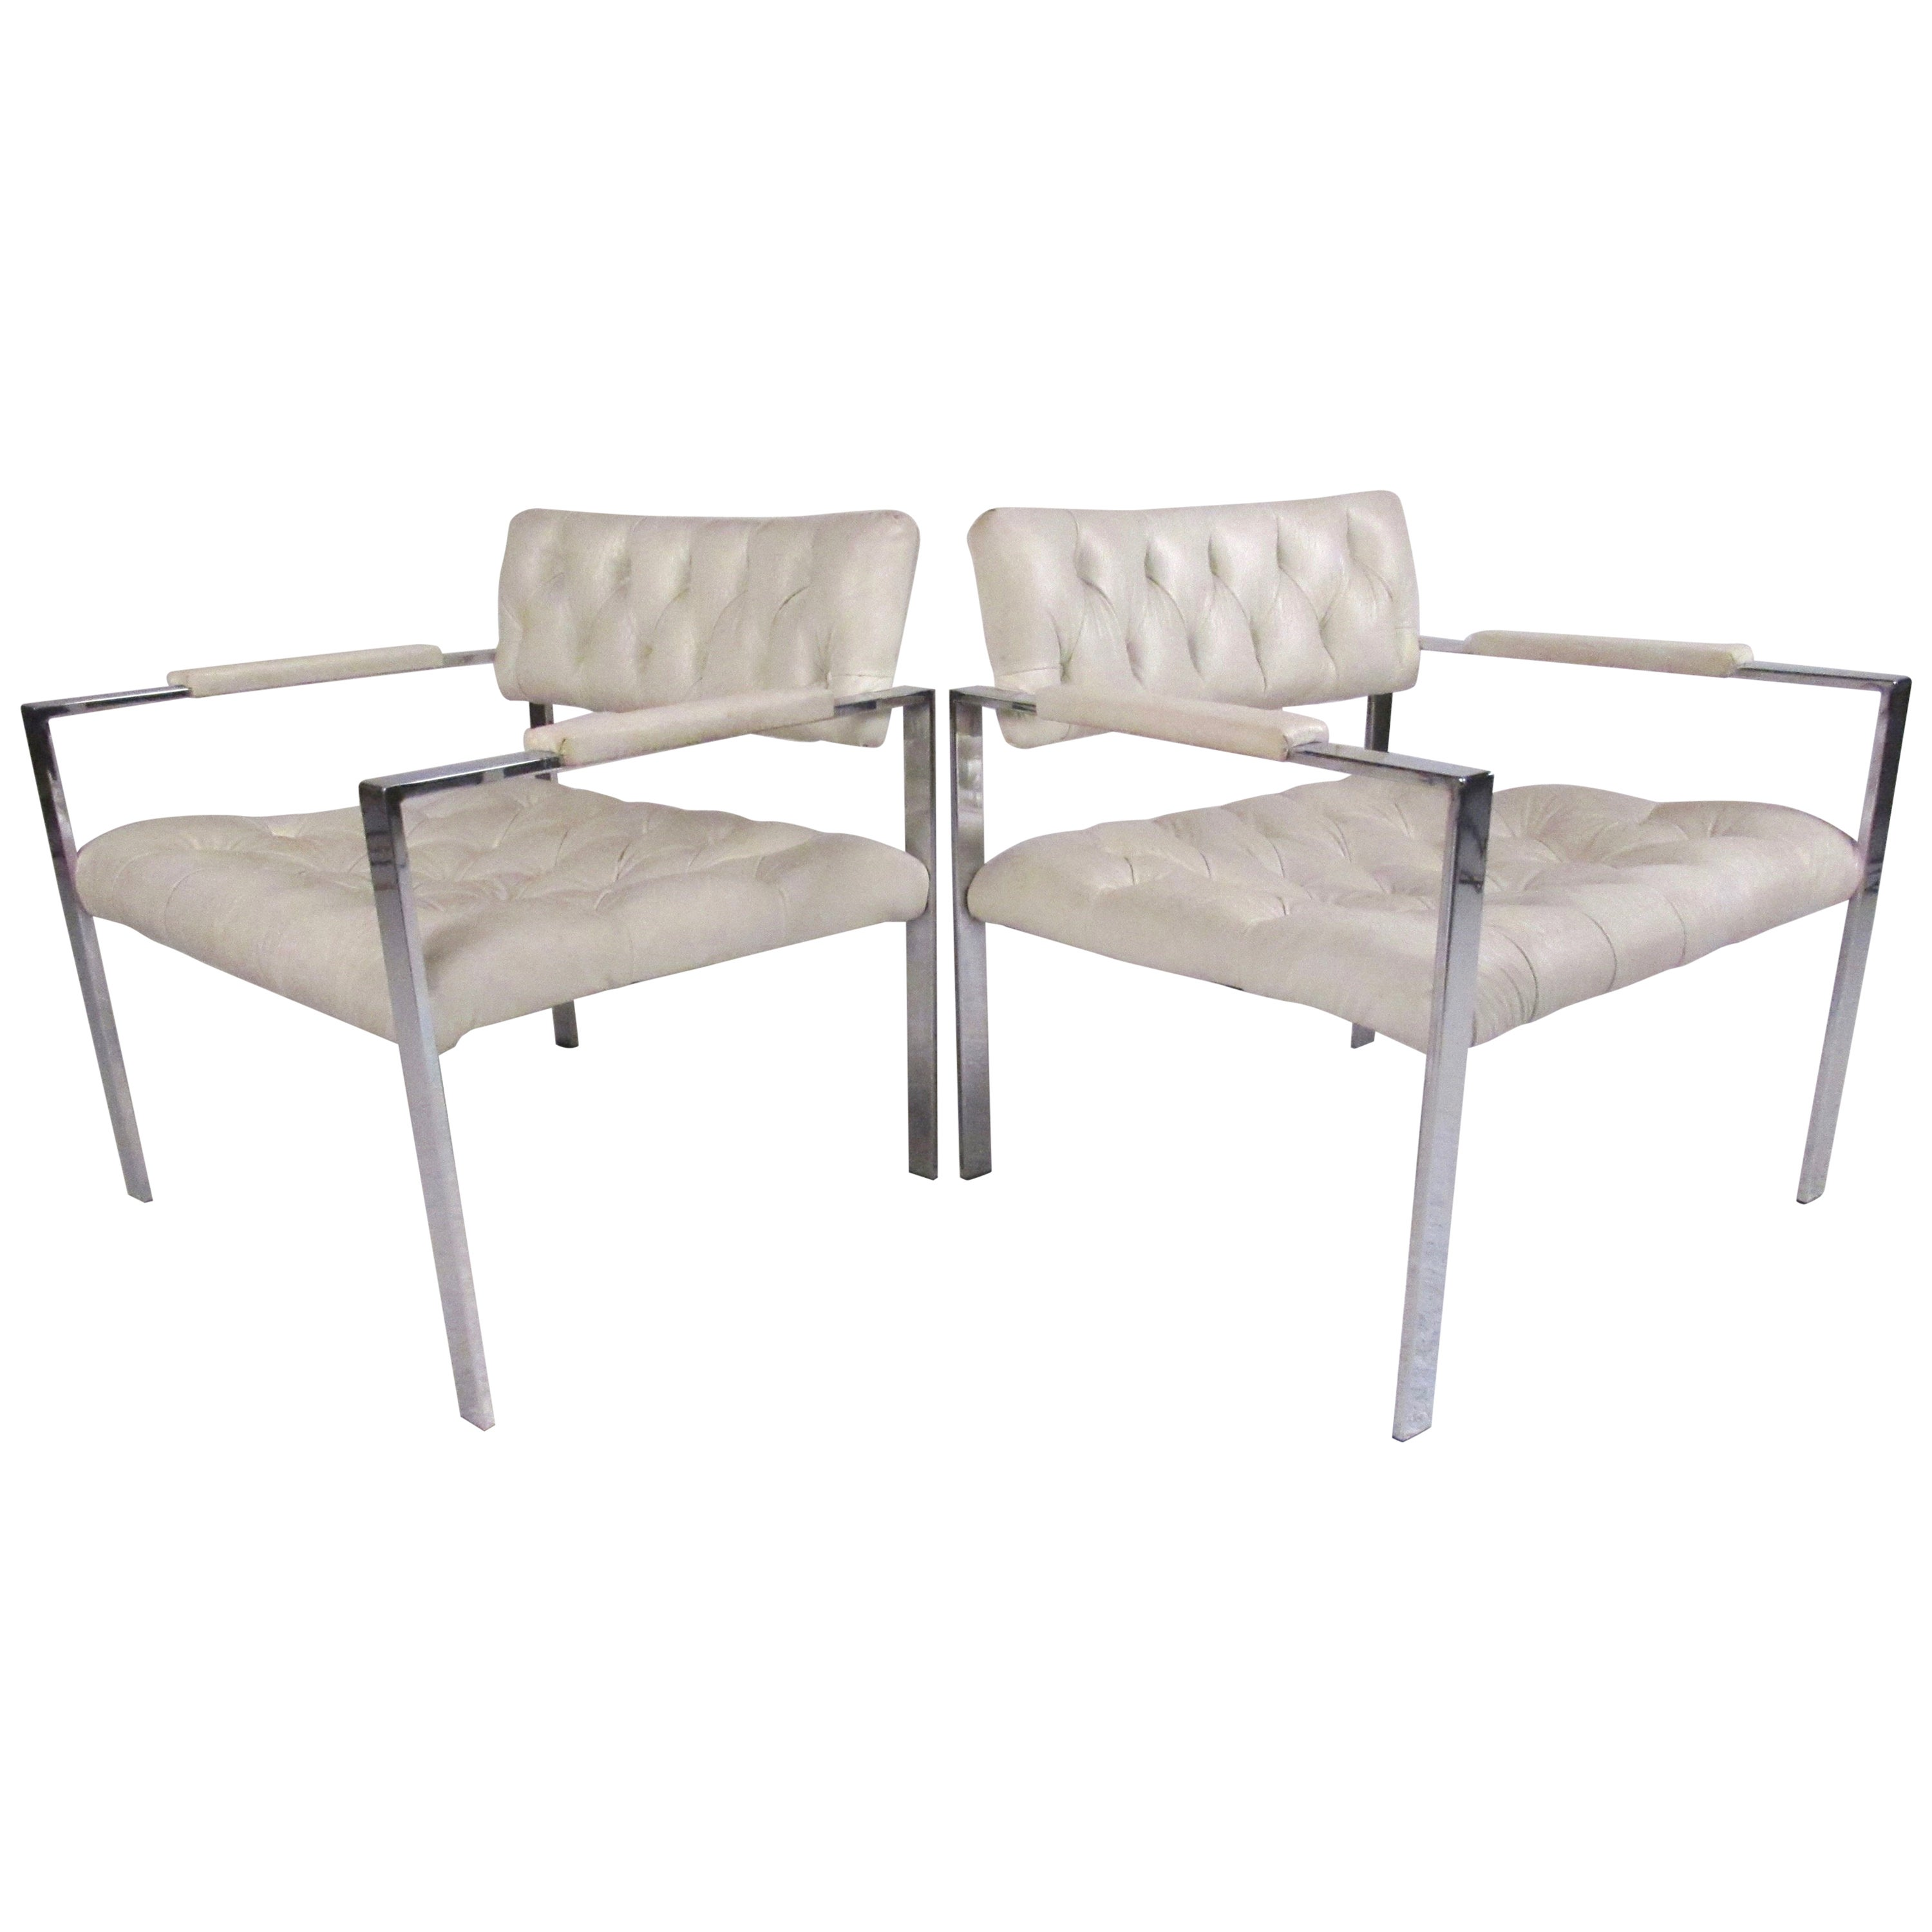 Pair of Chrome Lounge Chairs by Erwin-Lambeth in the style of Harvey Probber